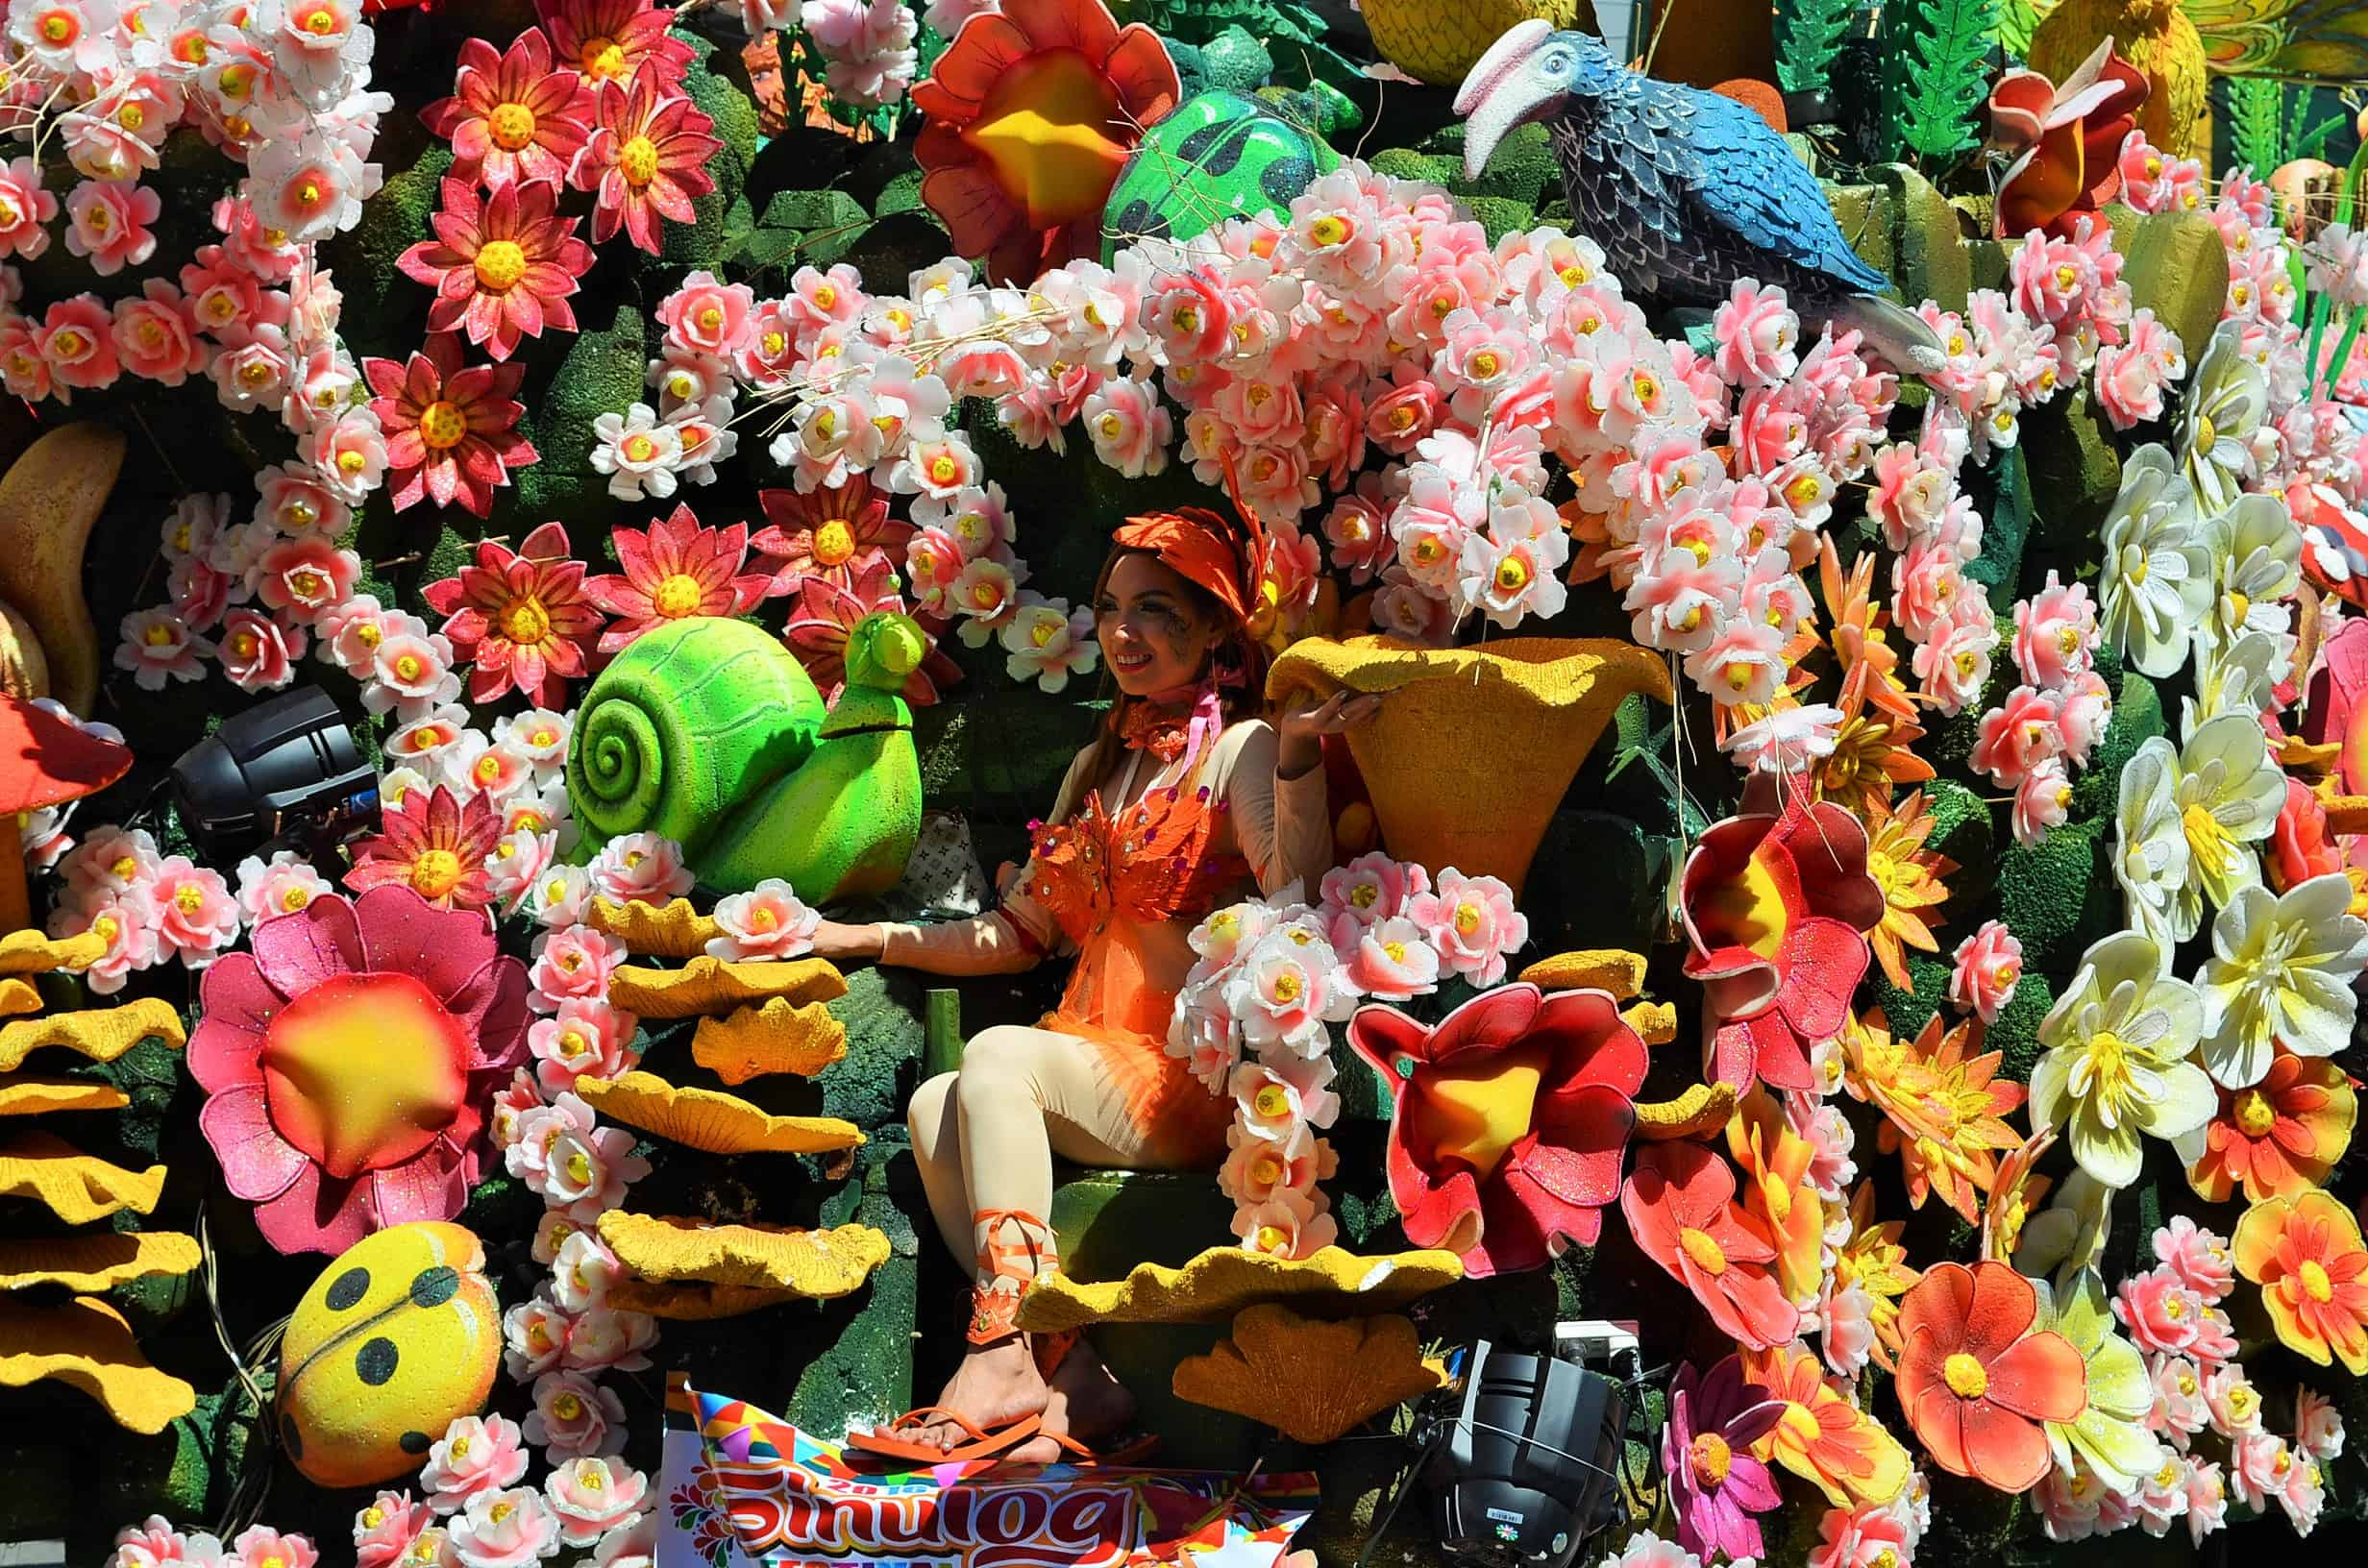 Sinulog Festival - Best Things To Do In Cebu, Philippines